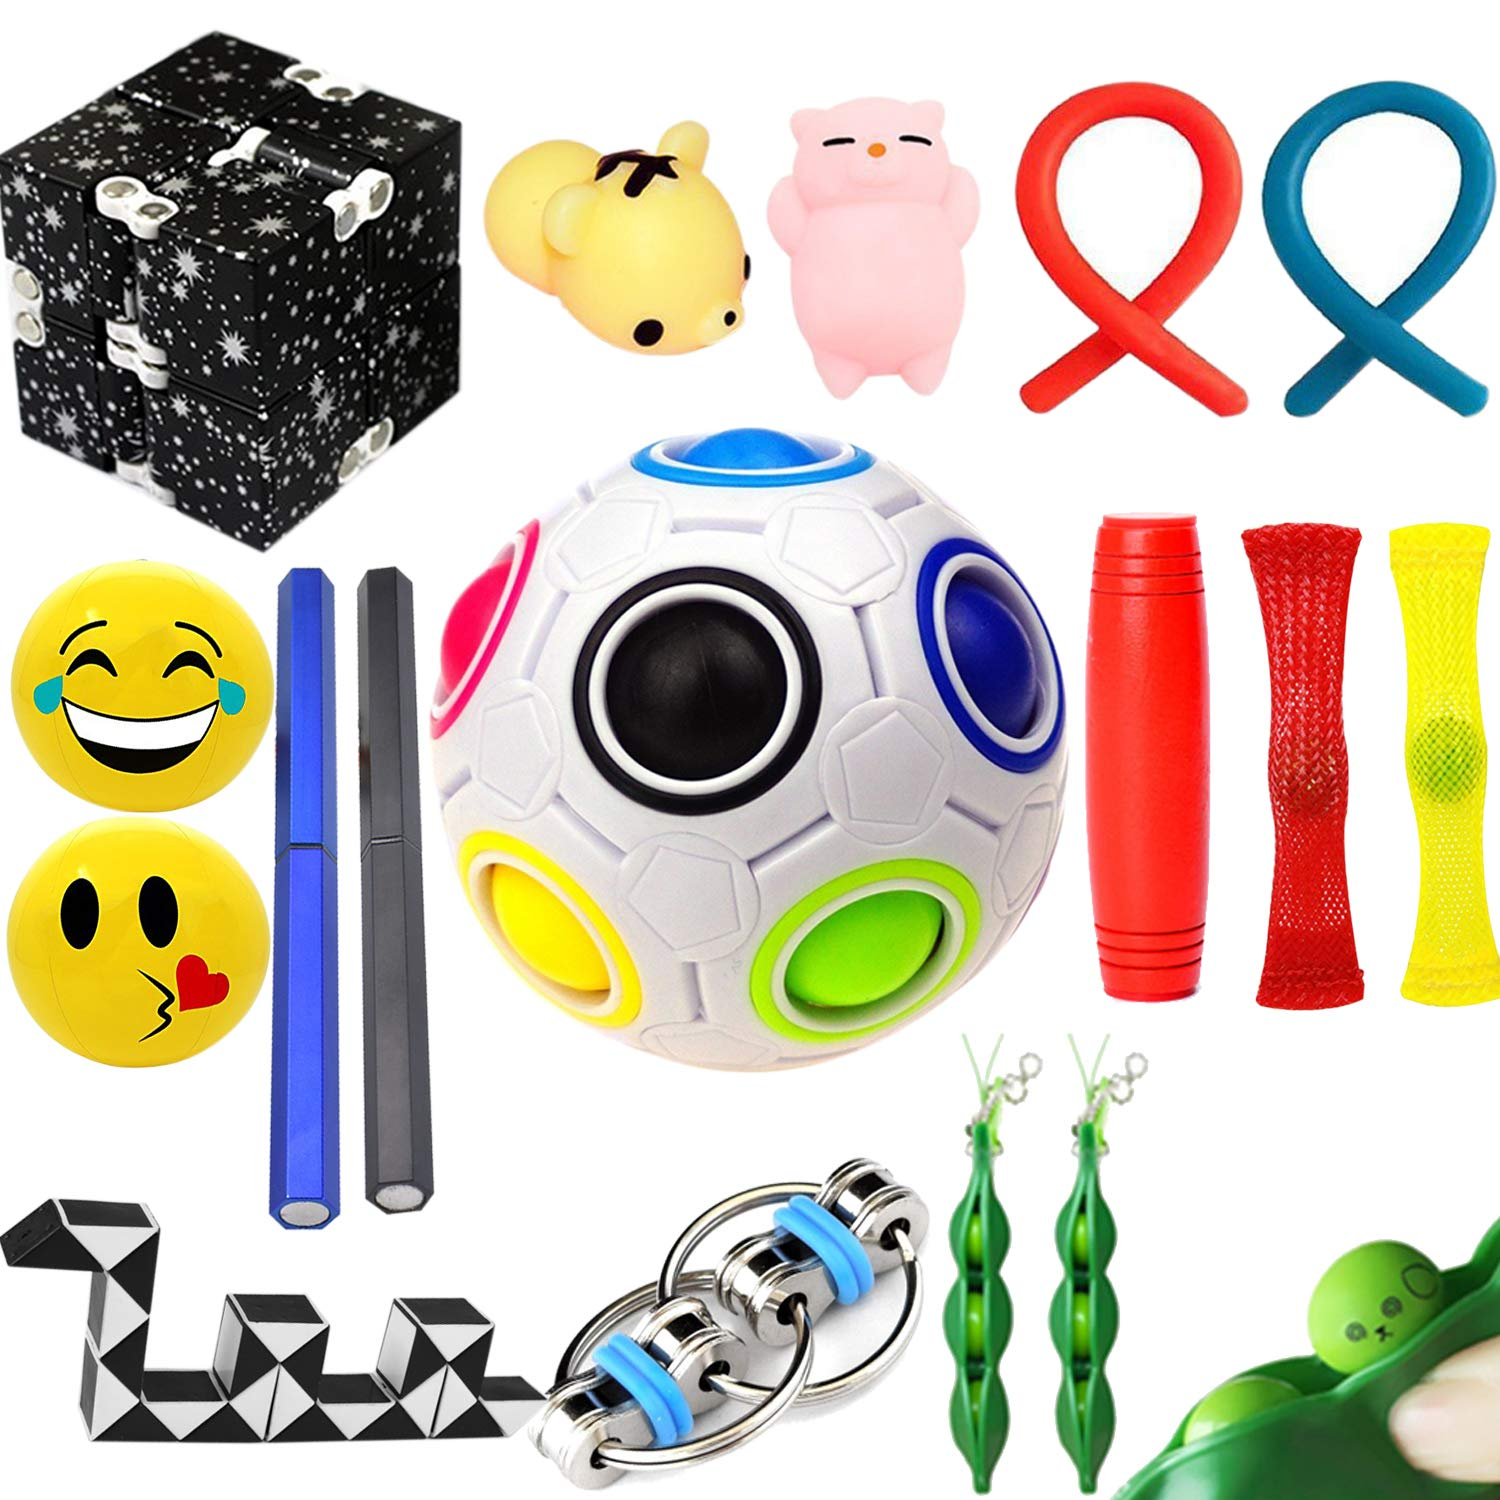 The Ultimate Sensory Fidget Toys Kit for Kids 20 Packs Fidget Cube/Infinity Cube/Squishy Ball/Squeeze Bean/Fidget Pen/Rainbow Magic Balls/Twisted Toy for ADD ADHD Stress Relax Prime by Sumine (Image #1)